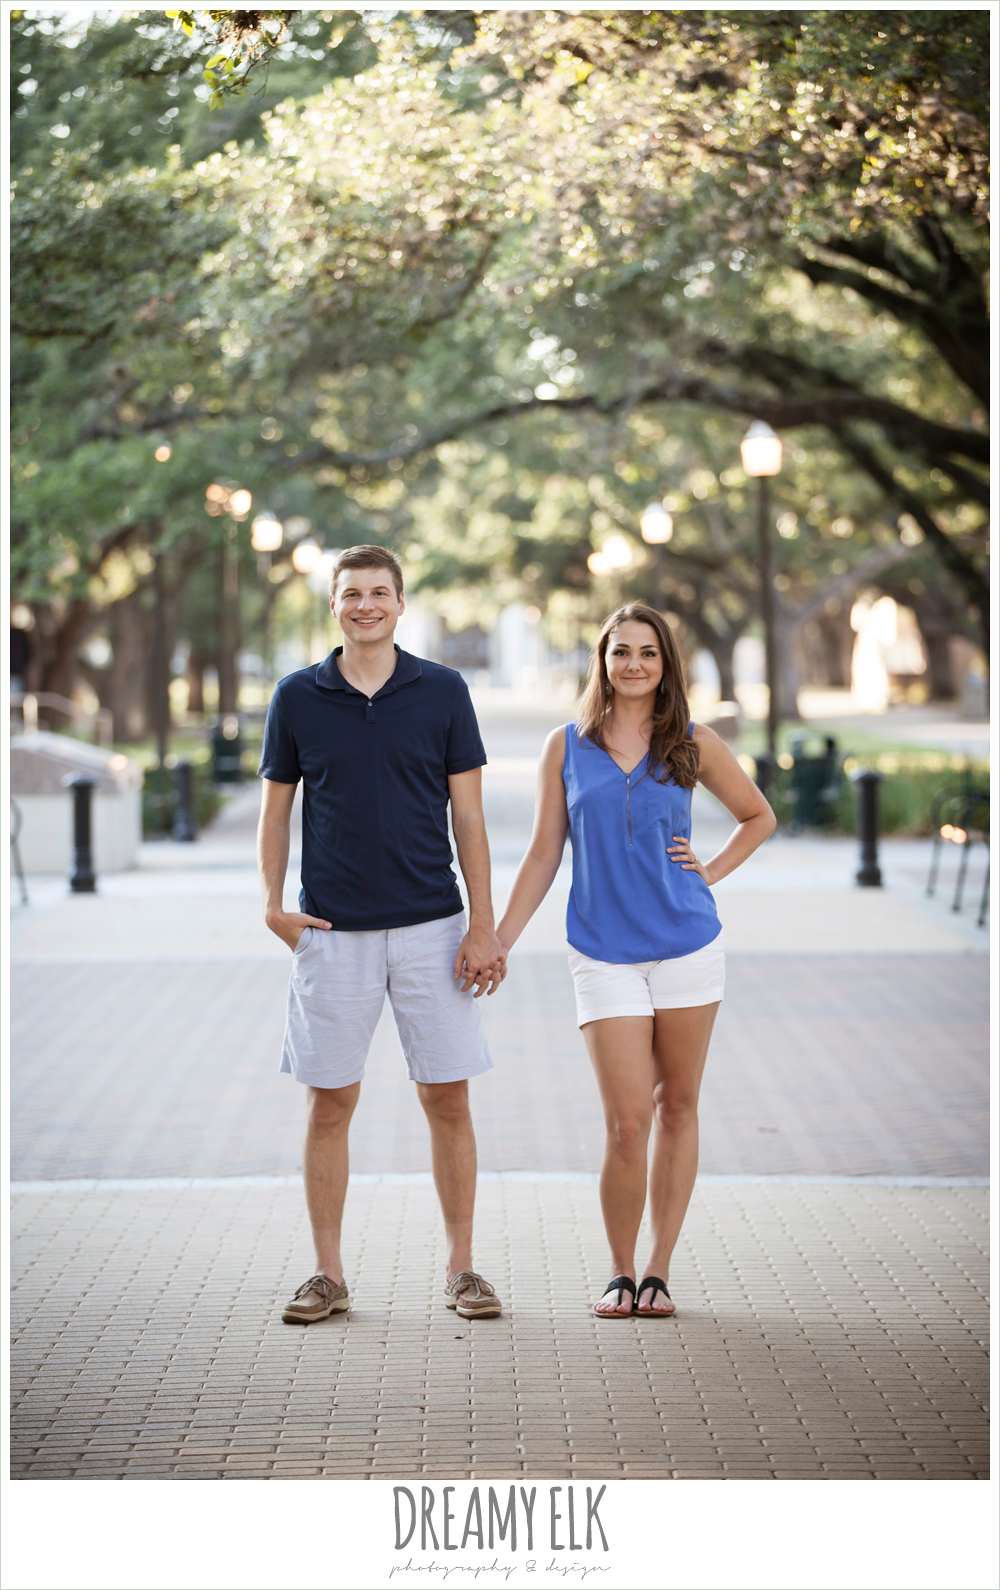 casual wardrobe, texas a&m campus, military walk, texas {dreamy elk photography and design}